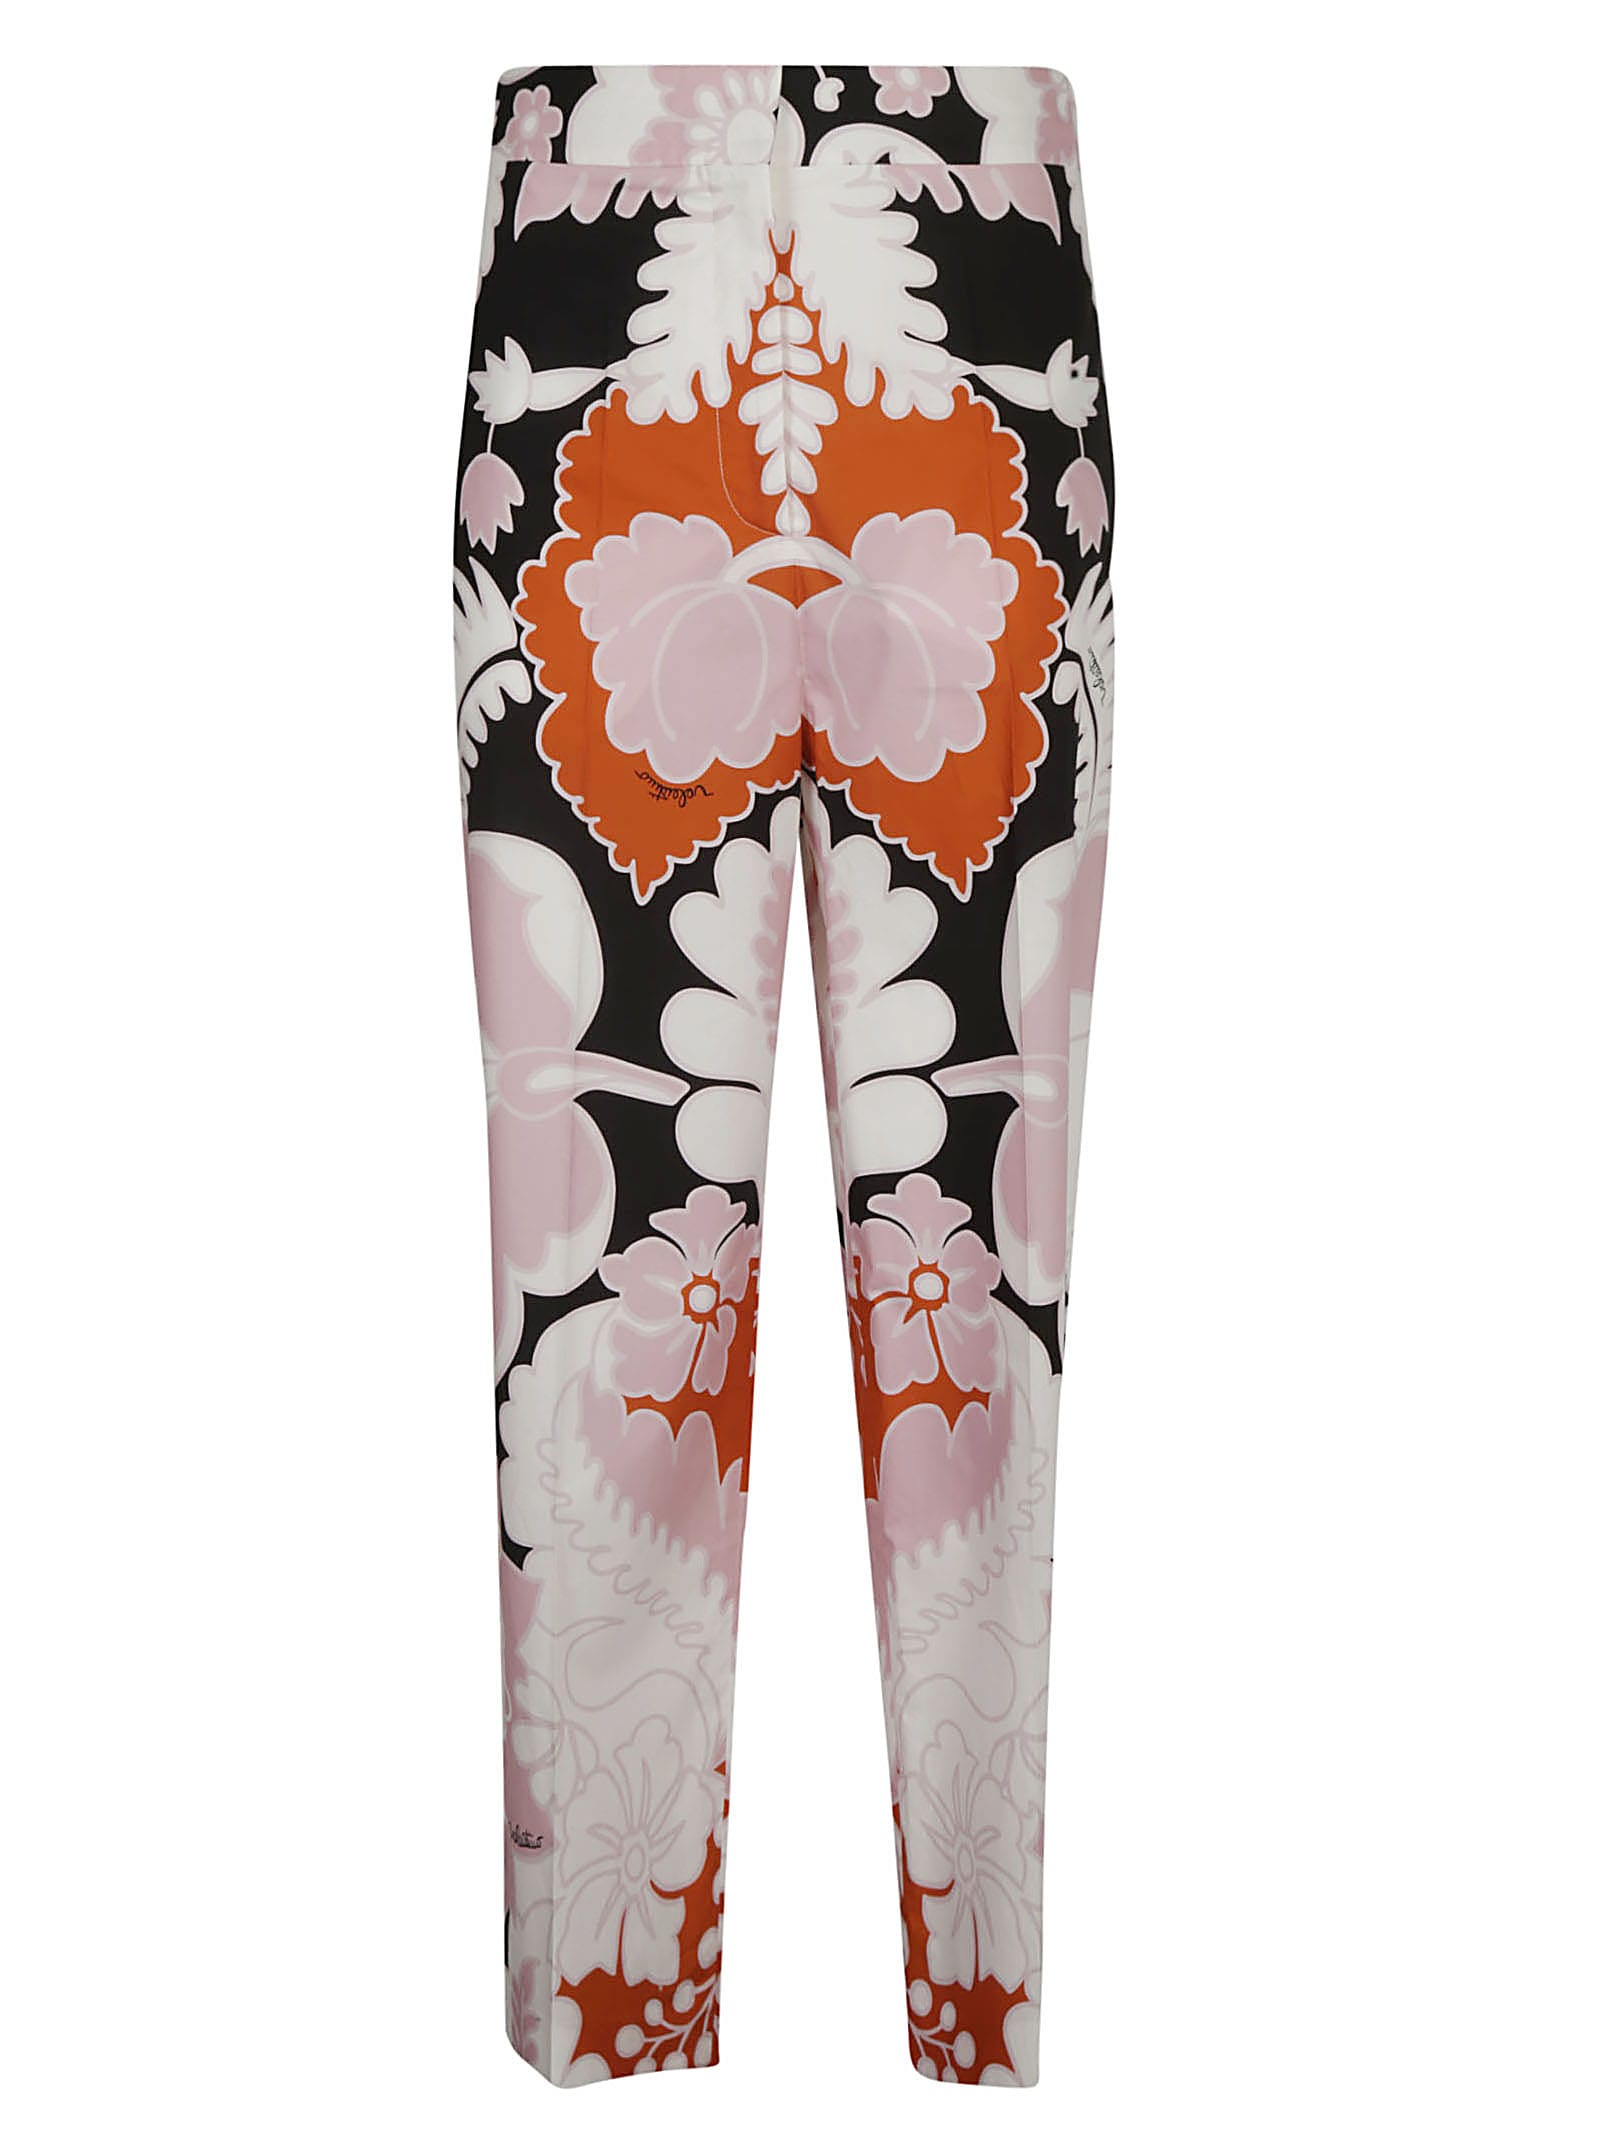 Valentino Floral Printed Trousers